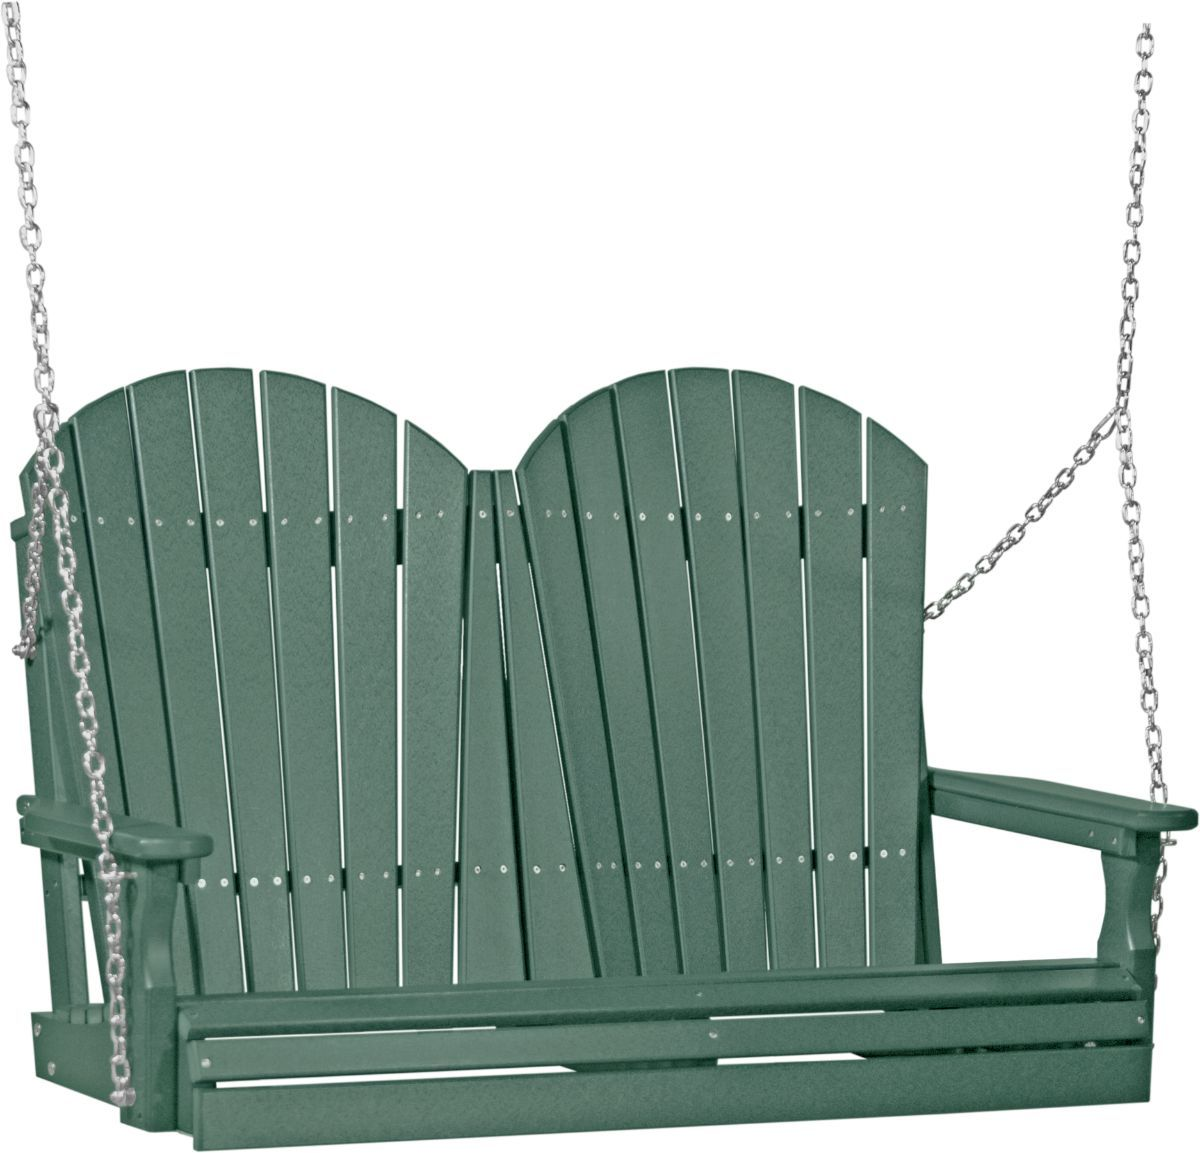 Green Tahiti Adirondack Porch Swing